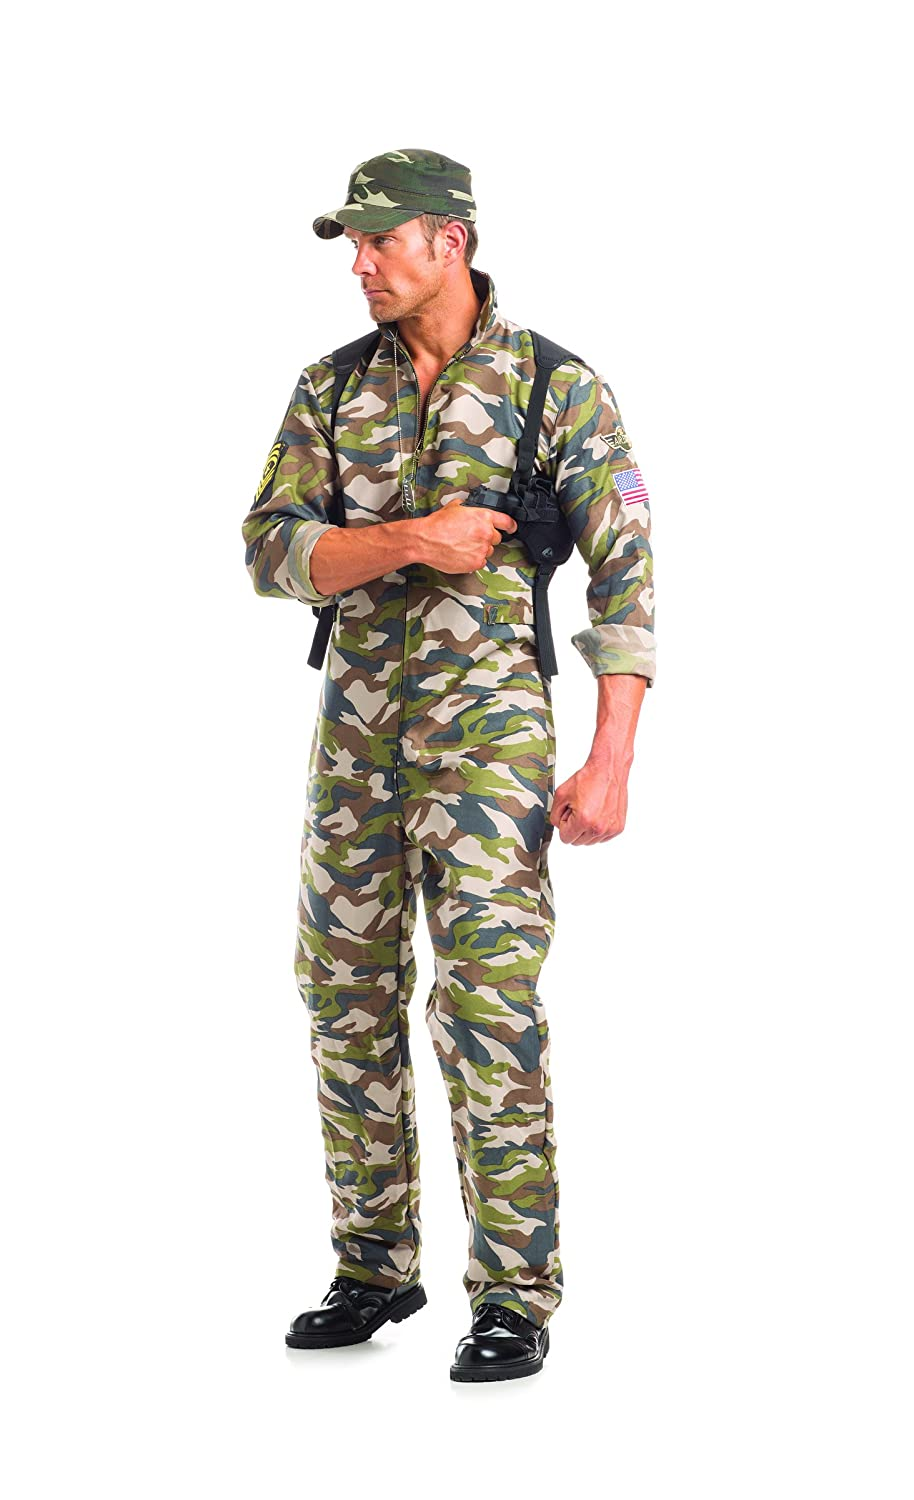 2 Piece Camouflage Man Costume